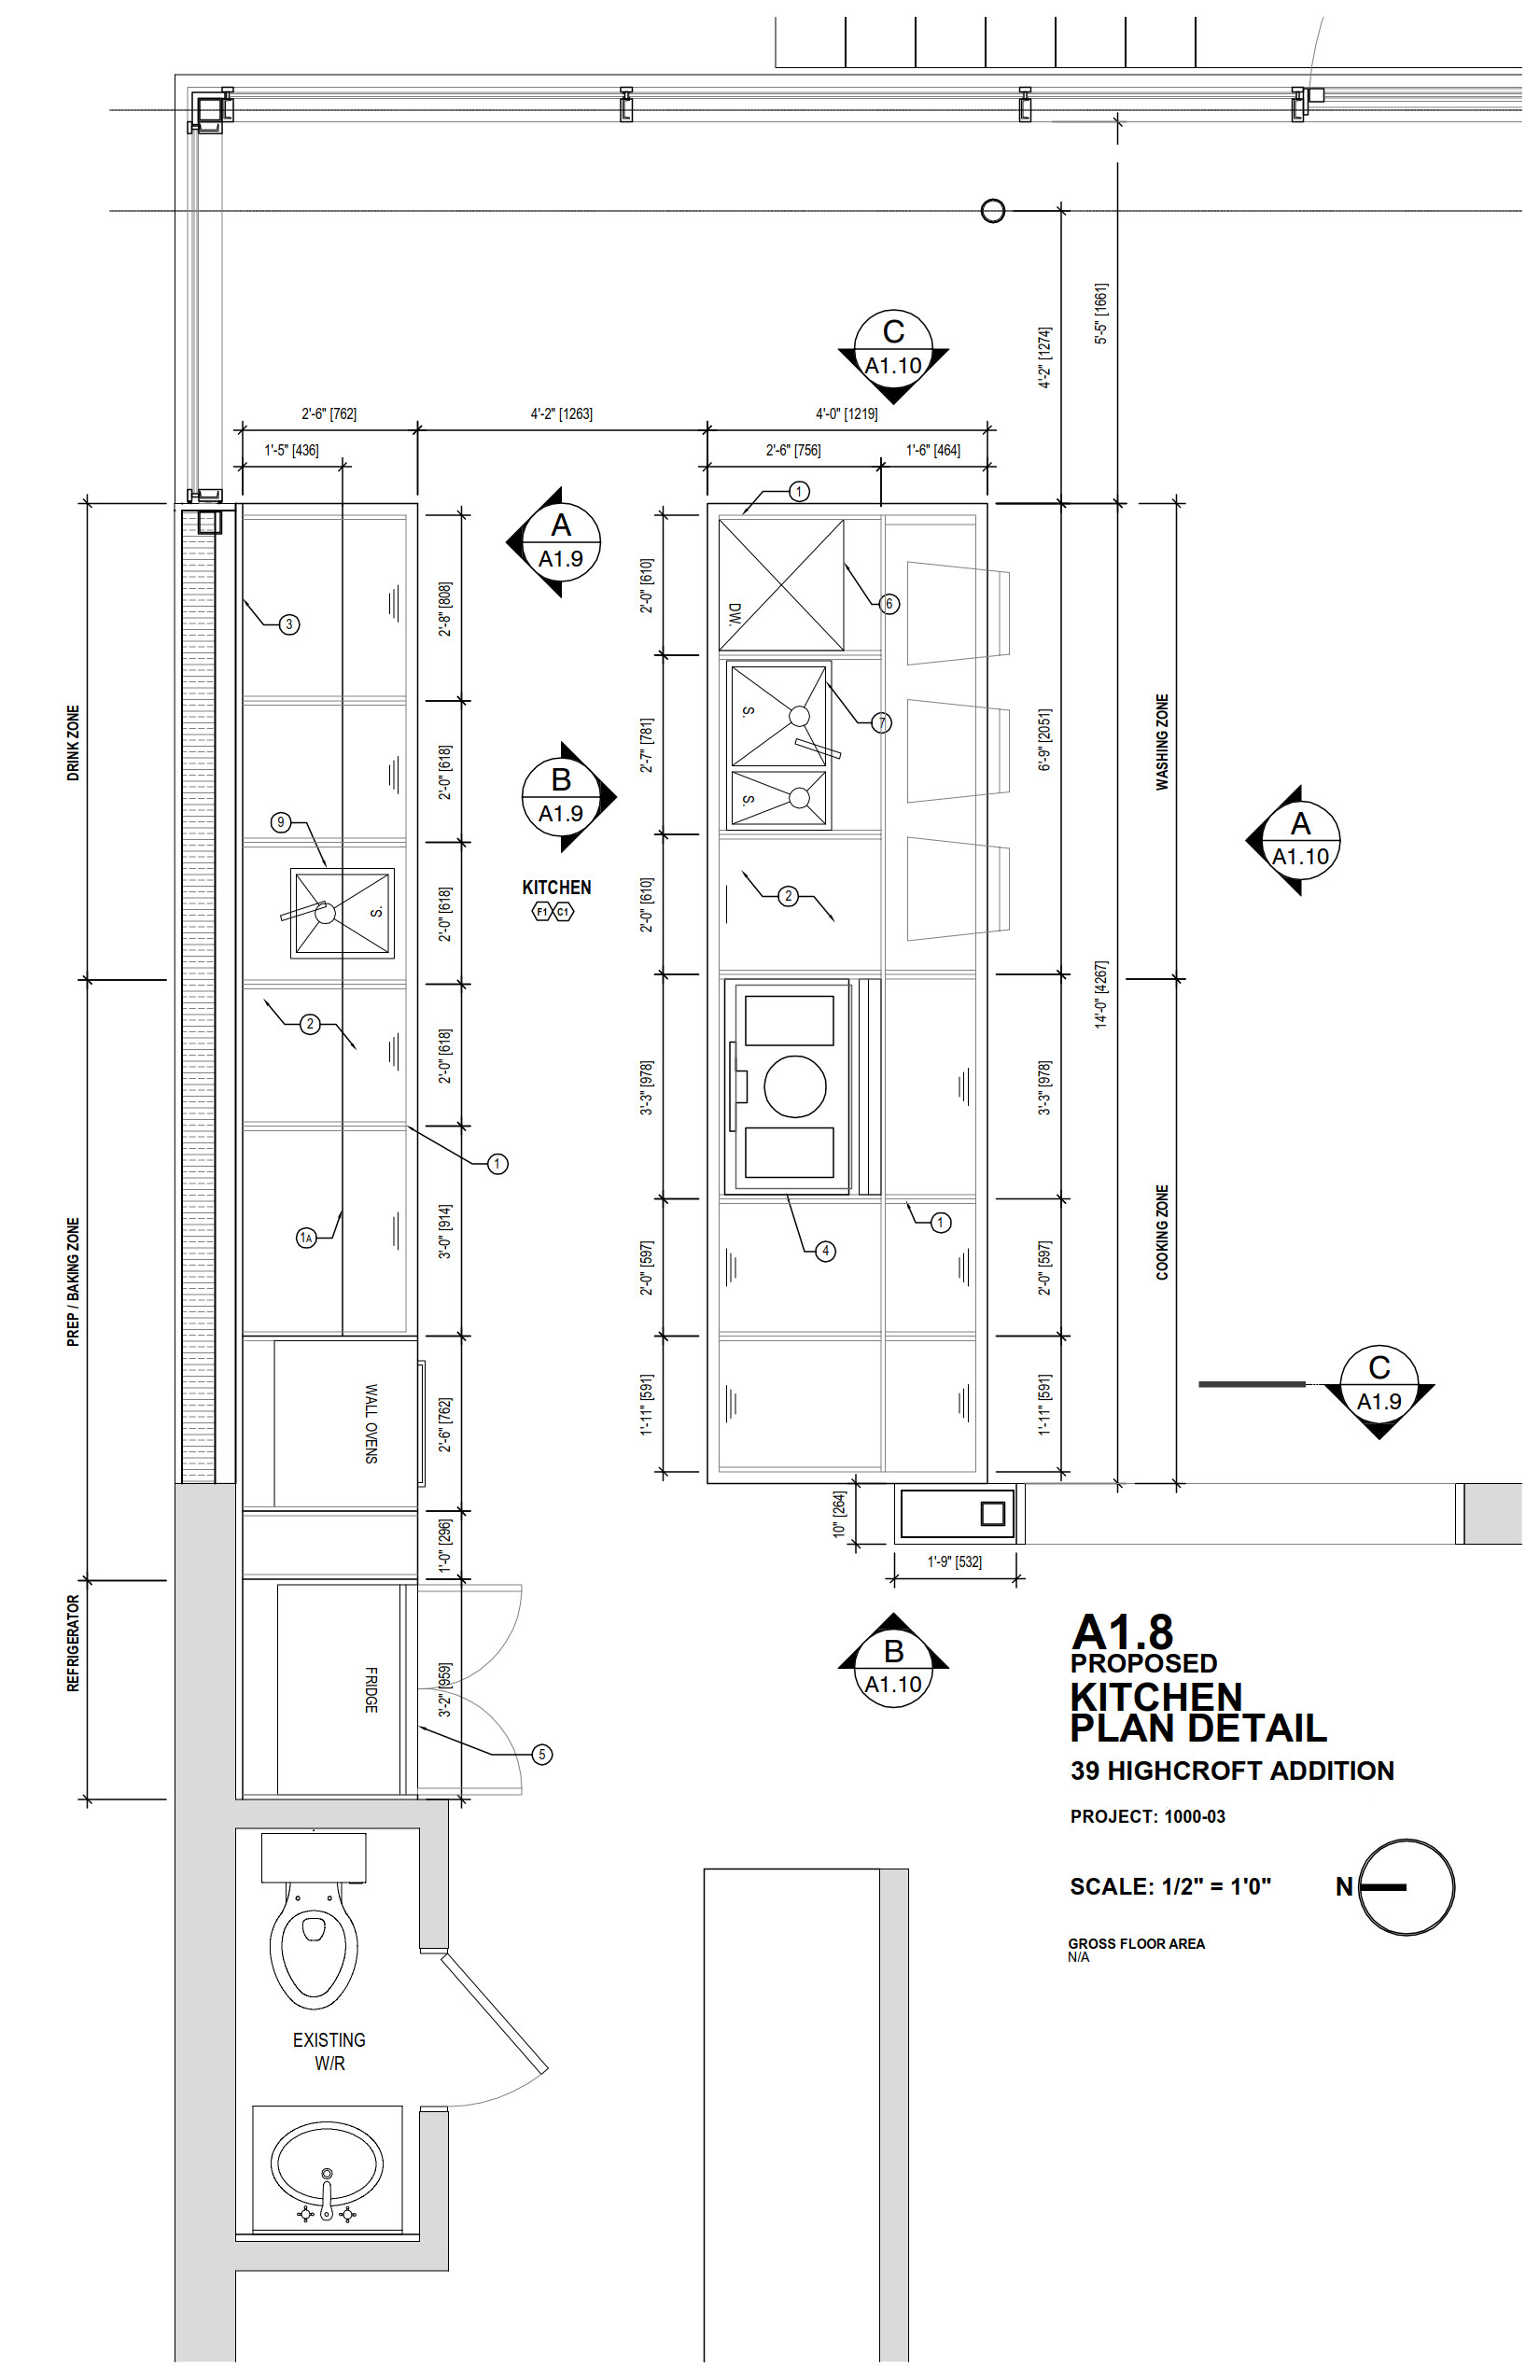 Drawing, Plan, Kitchen